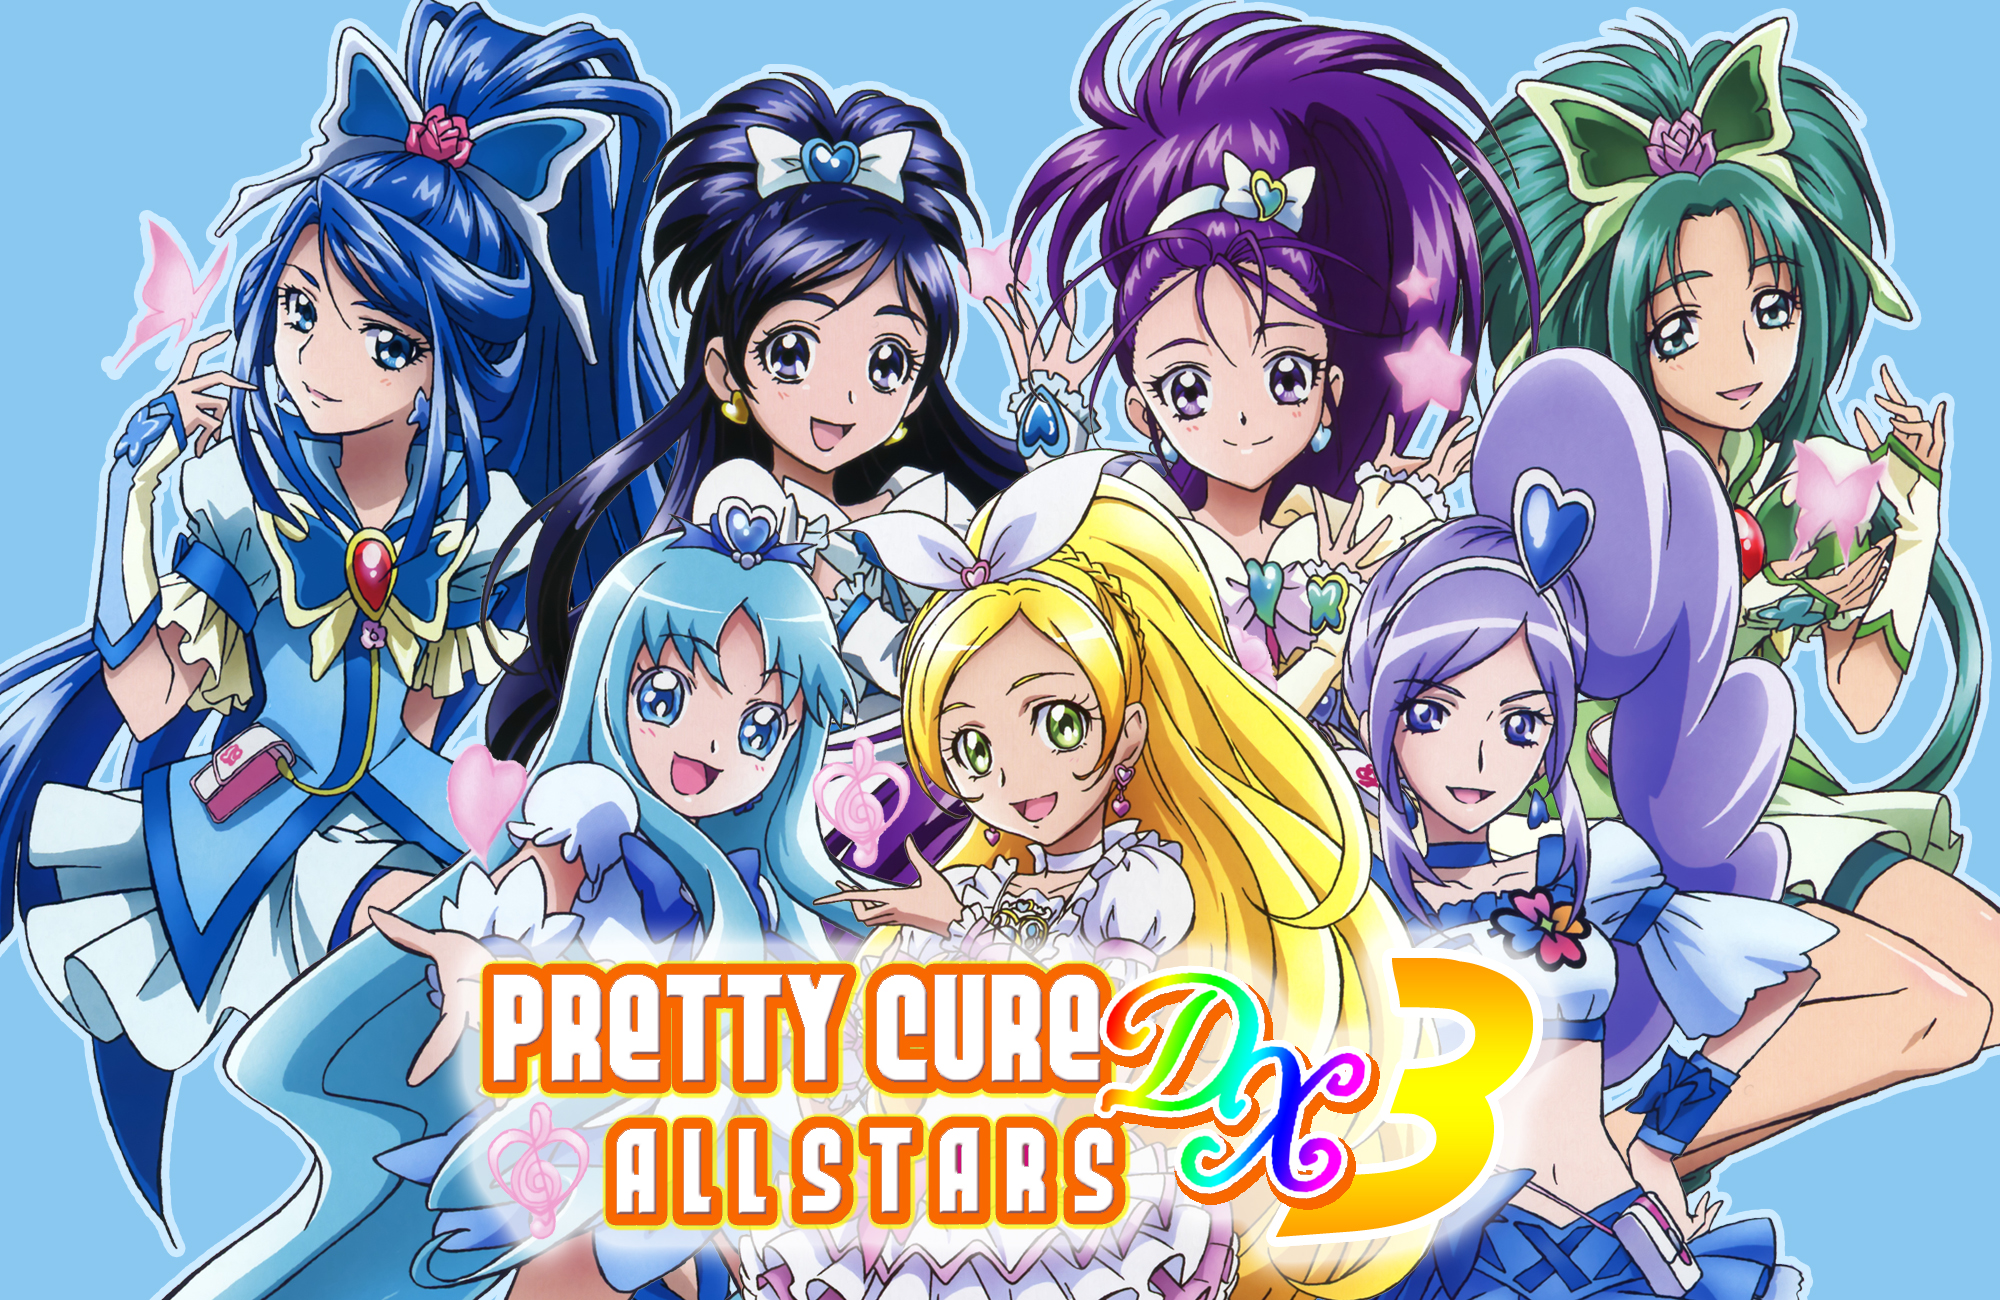 Precure All Stars #Precure   プリキュア イラスト, プリキュア 漫画, シンフォギア